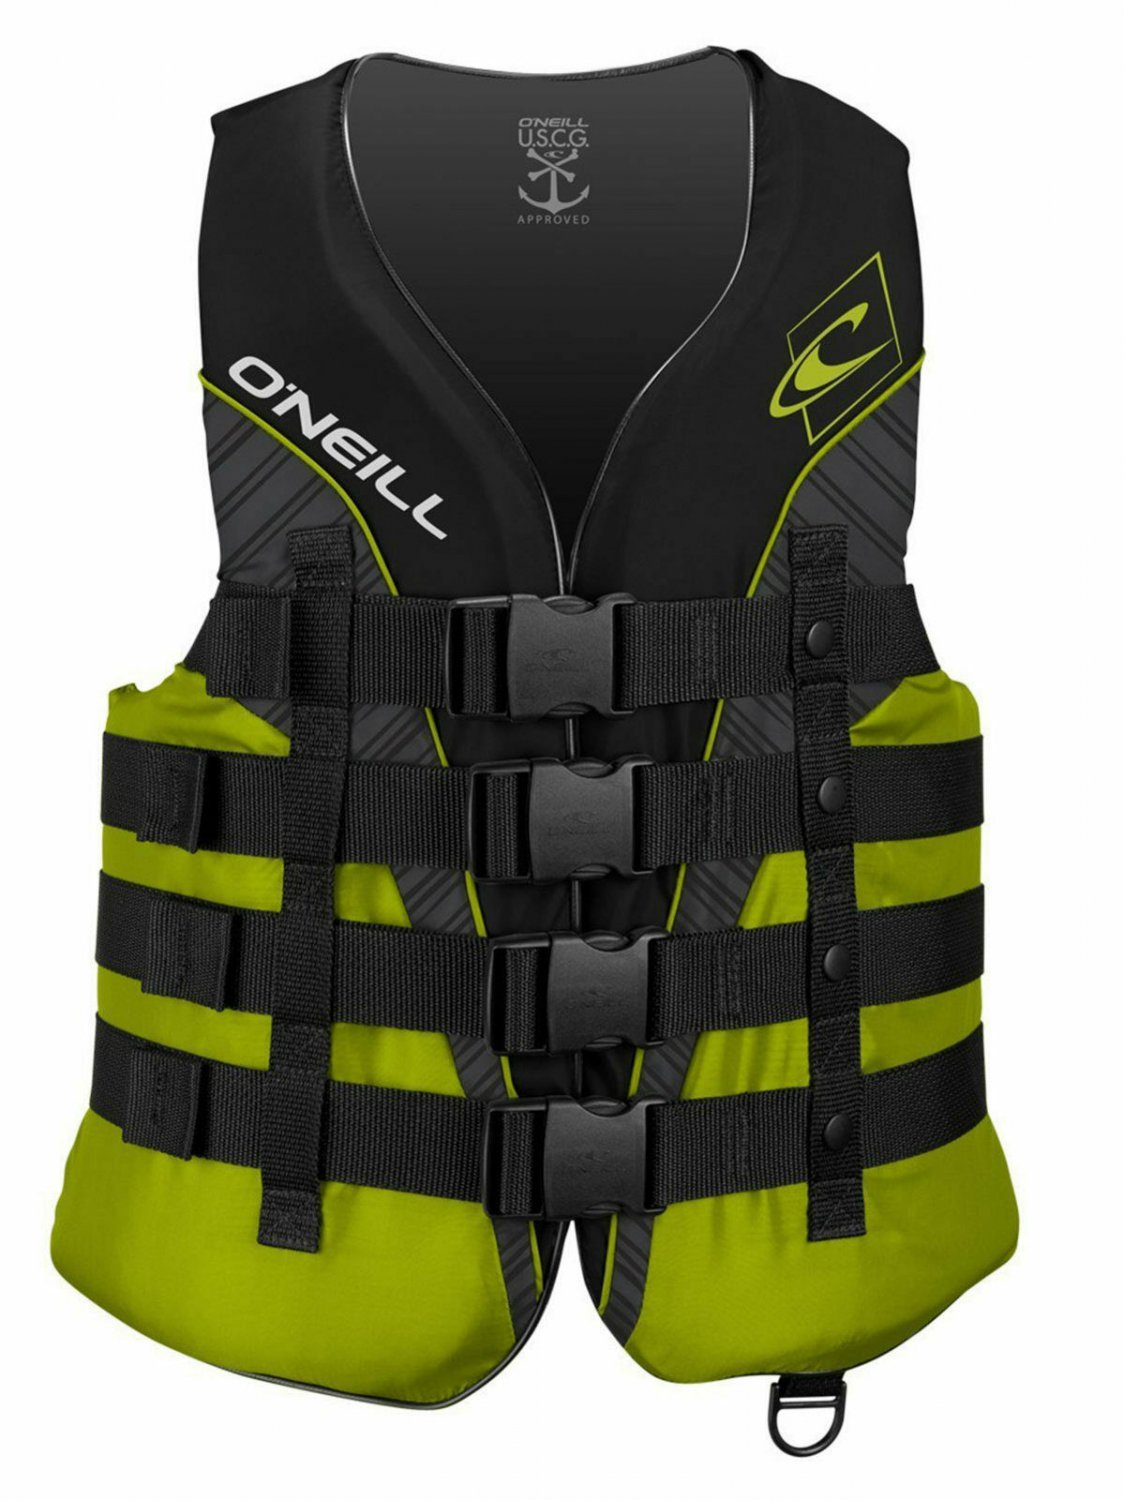 O'NEILL MEN'S SUPERLITE USCG LIFE VEST, Black/Lime/Smoke:Lime, Size 2XL